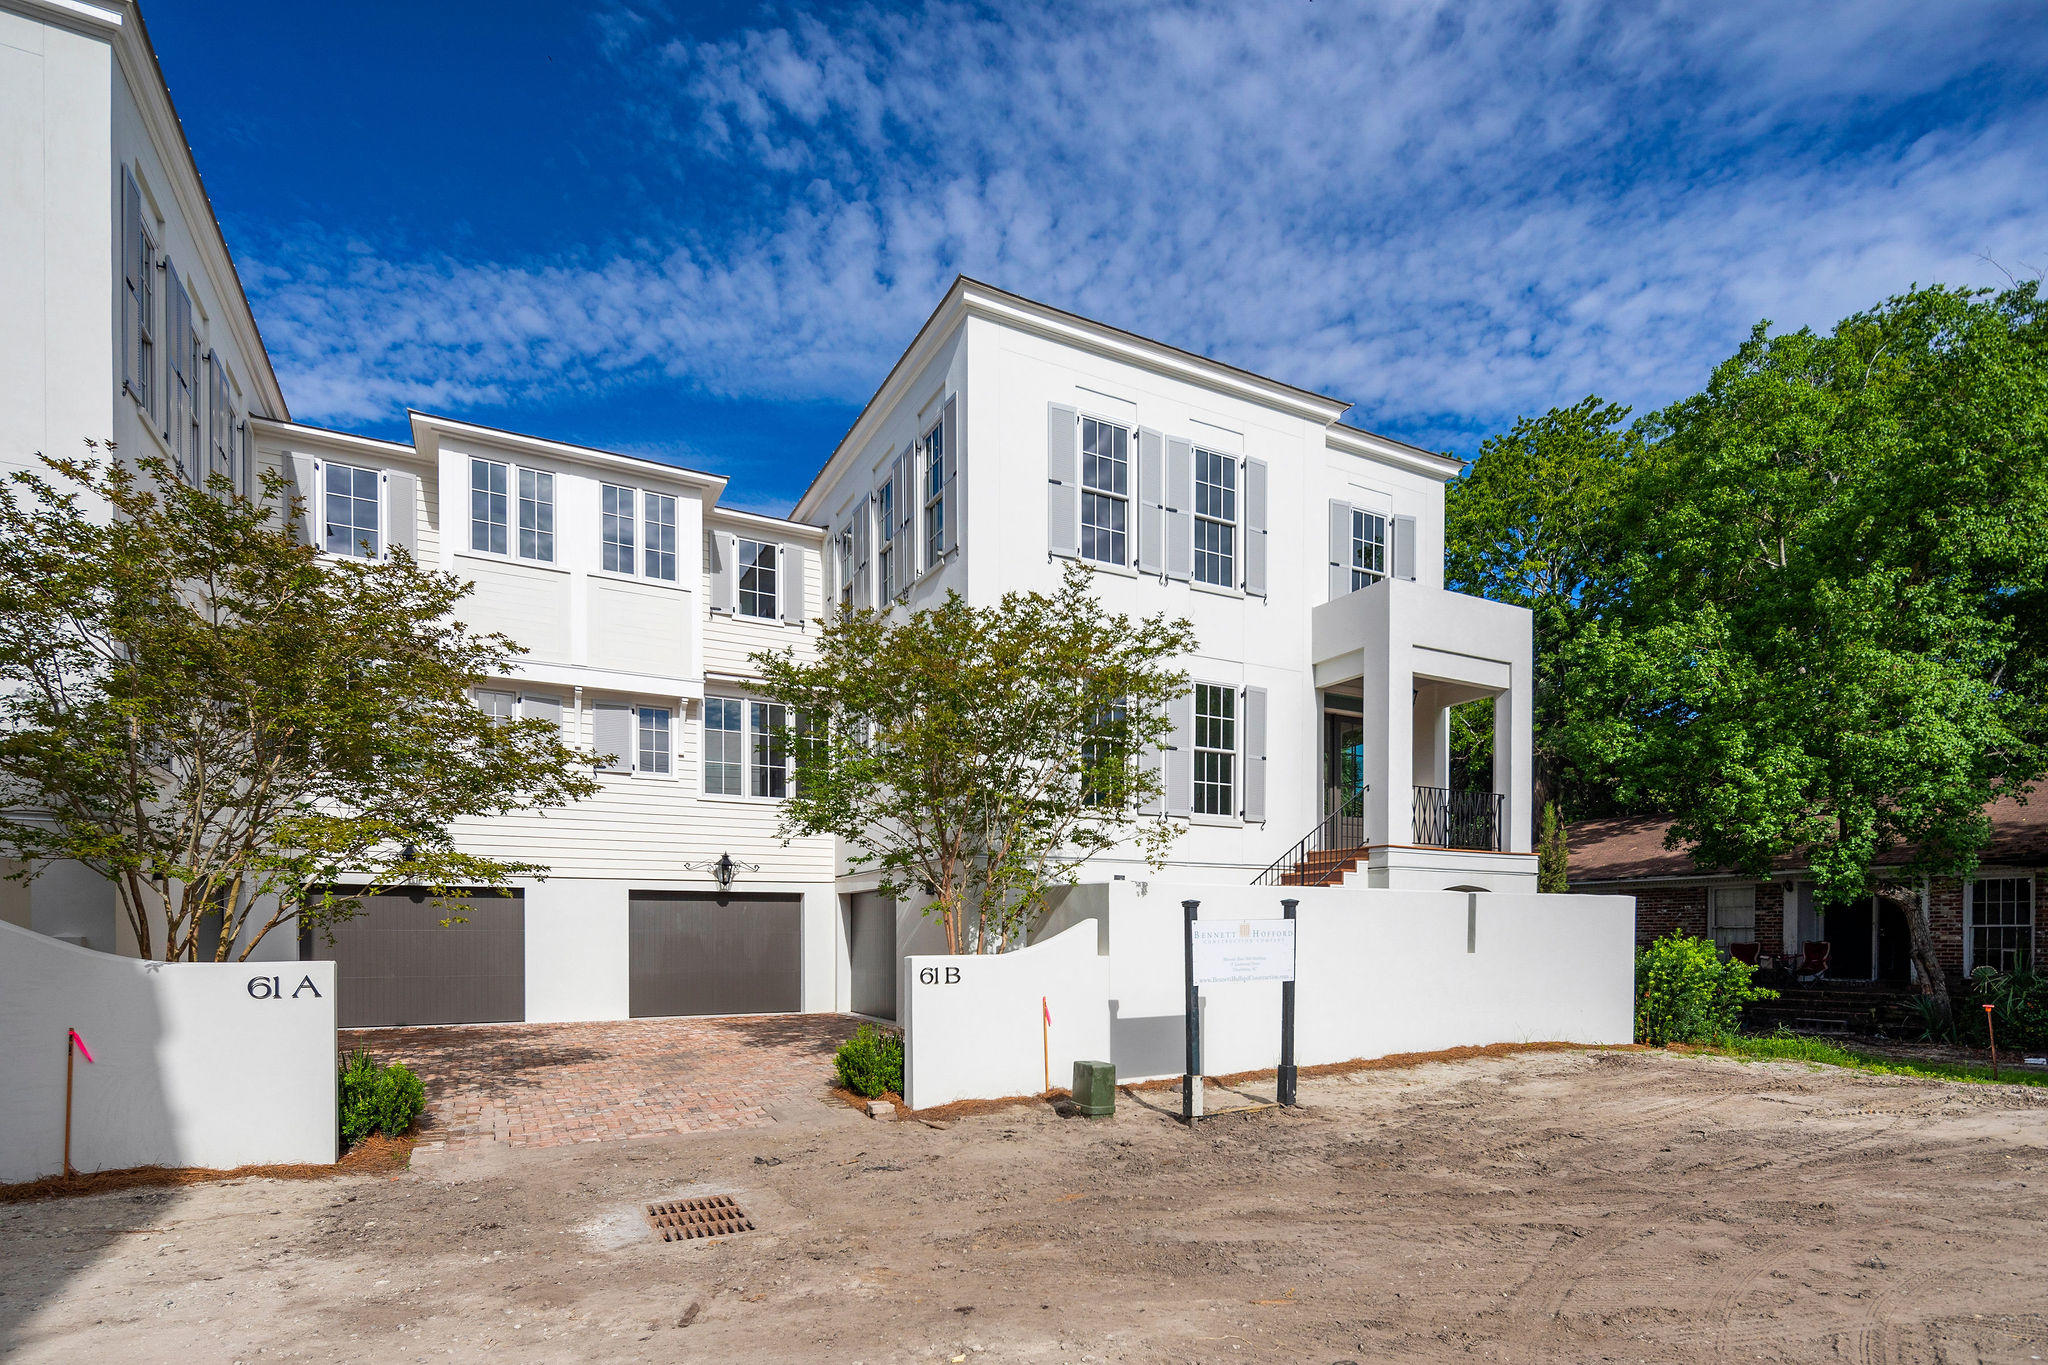 Harleston Village Condos For Sale - 61 B Barre, Charleston, SC - 46